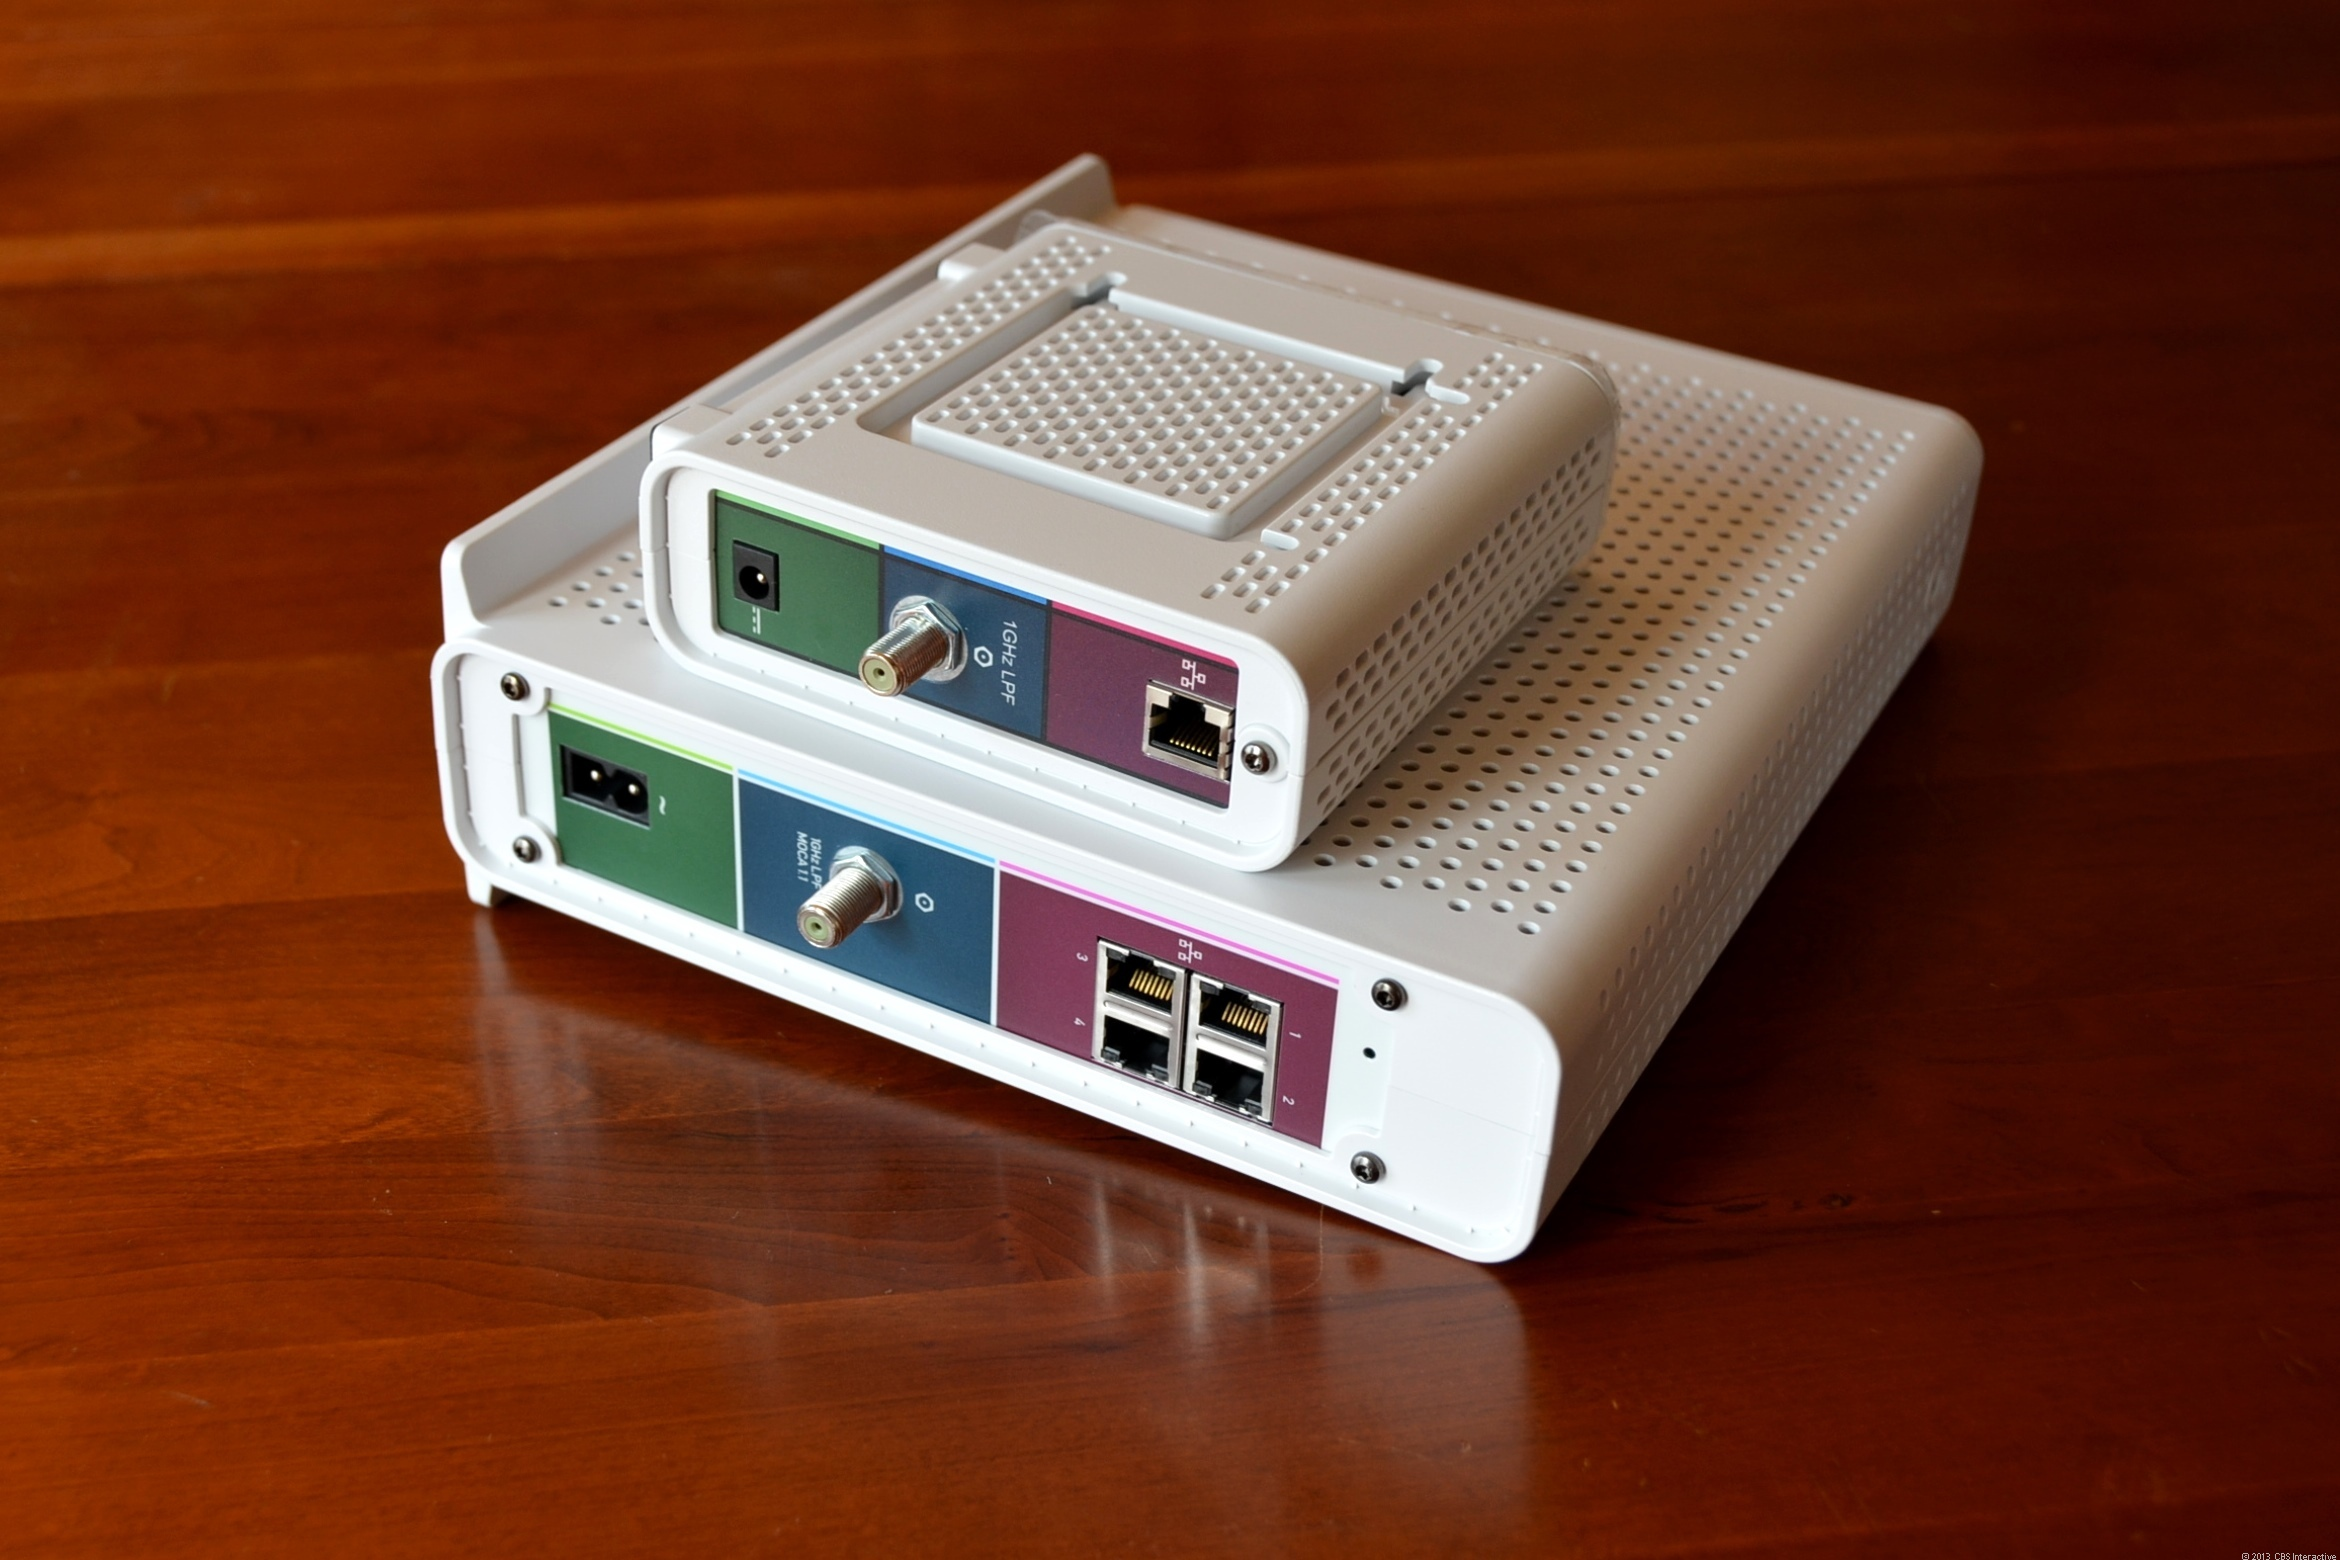 The SURFboard eXtreme is so much larger than a standalone cable modem.